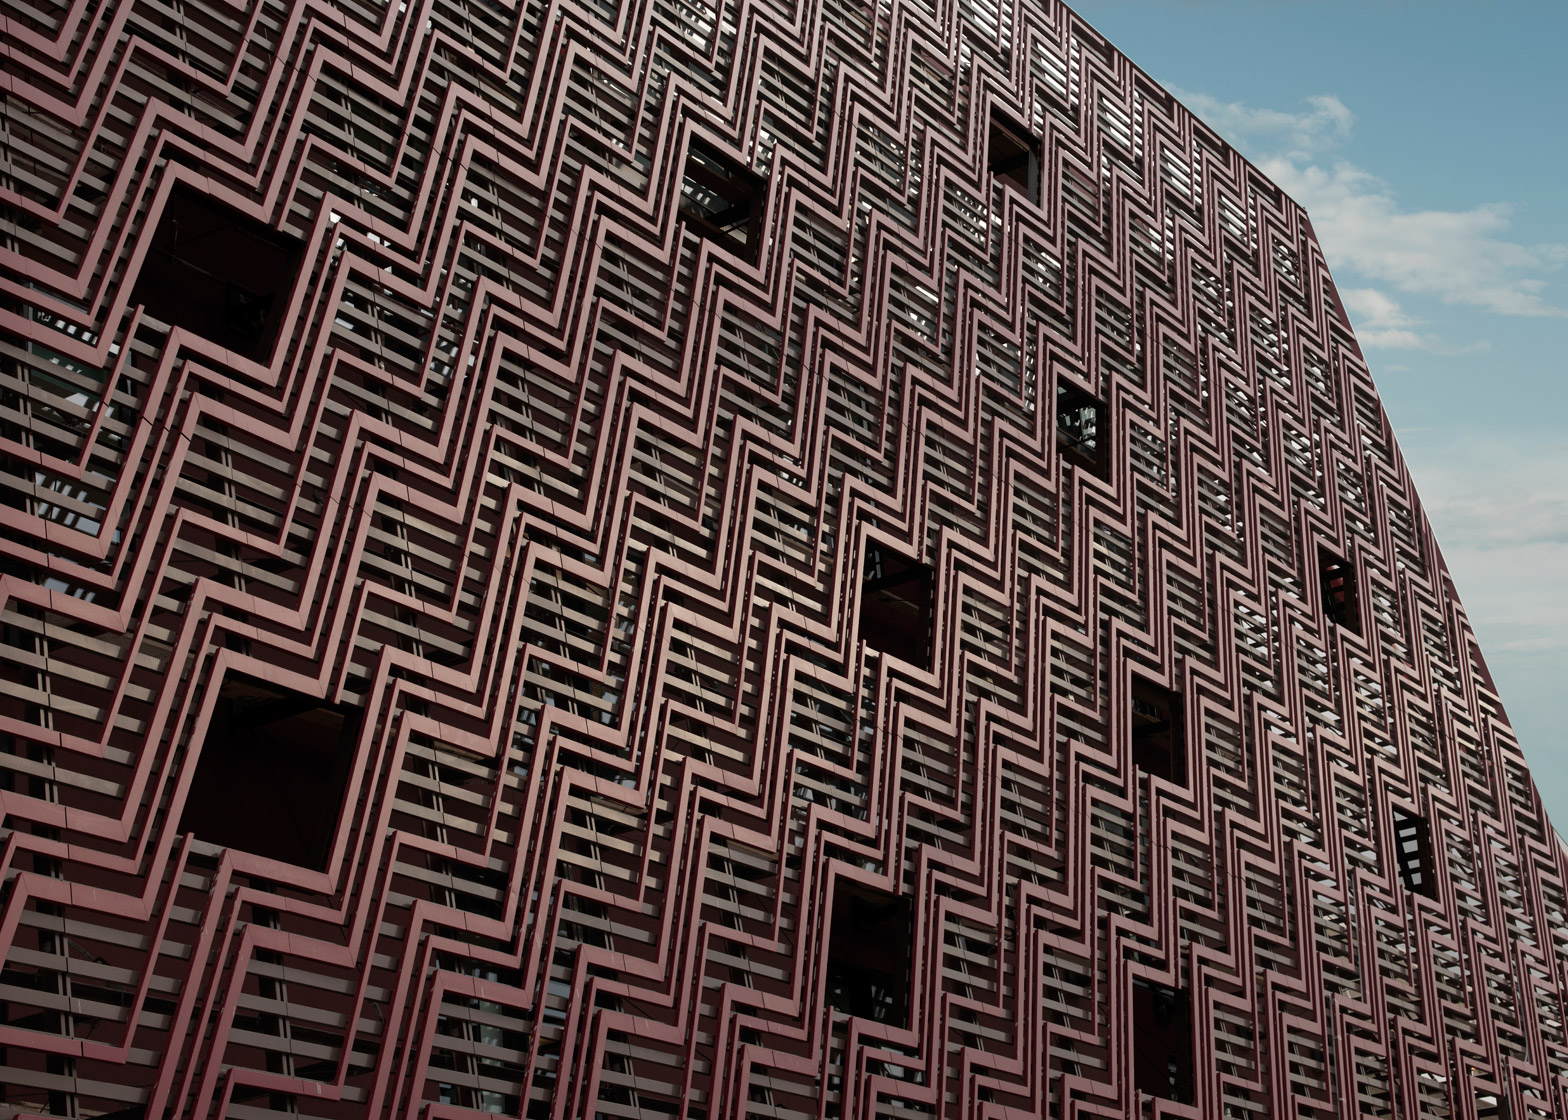 Aishti Foundation building by David Adjaye